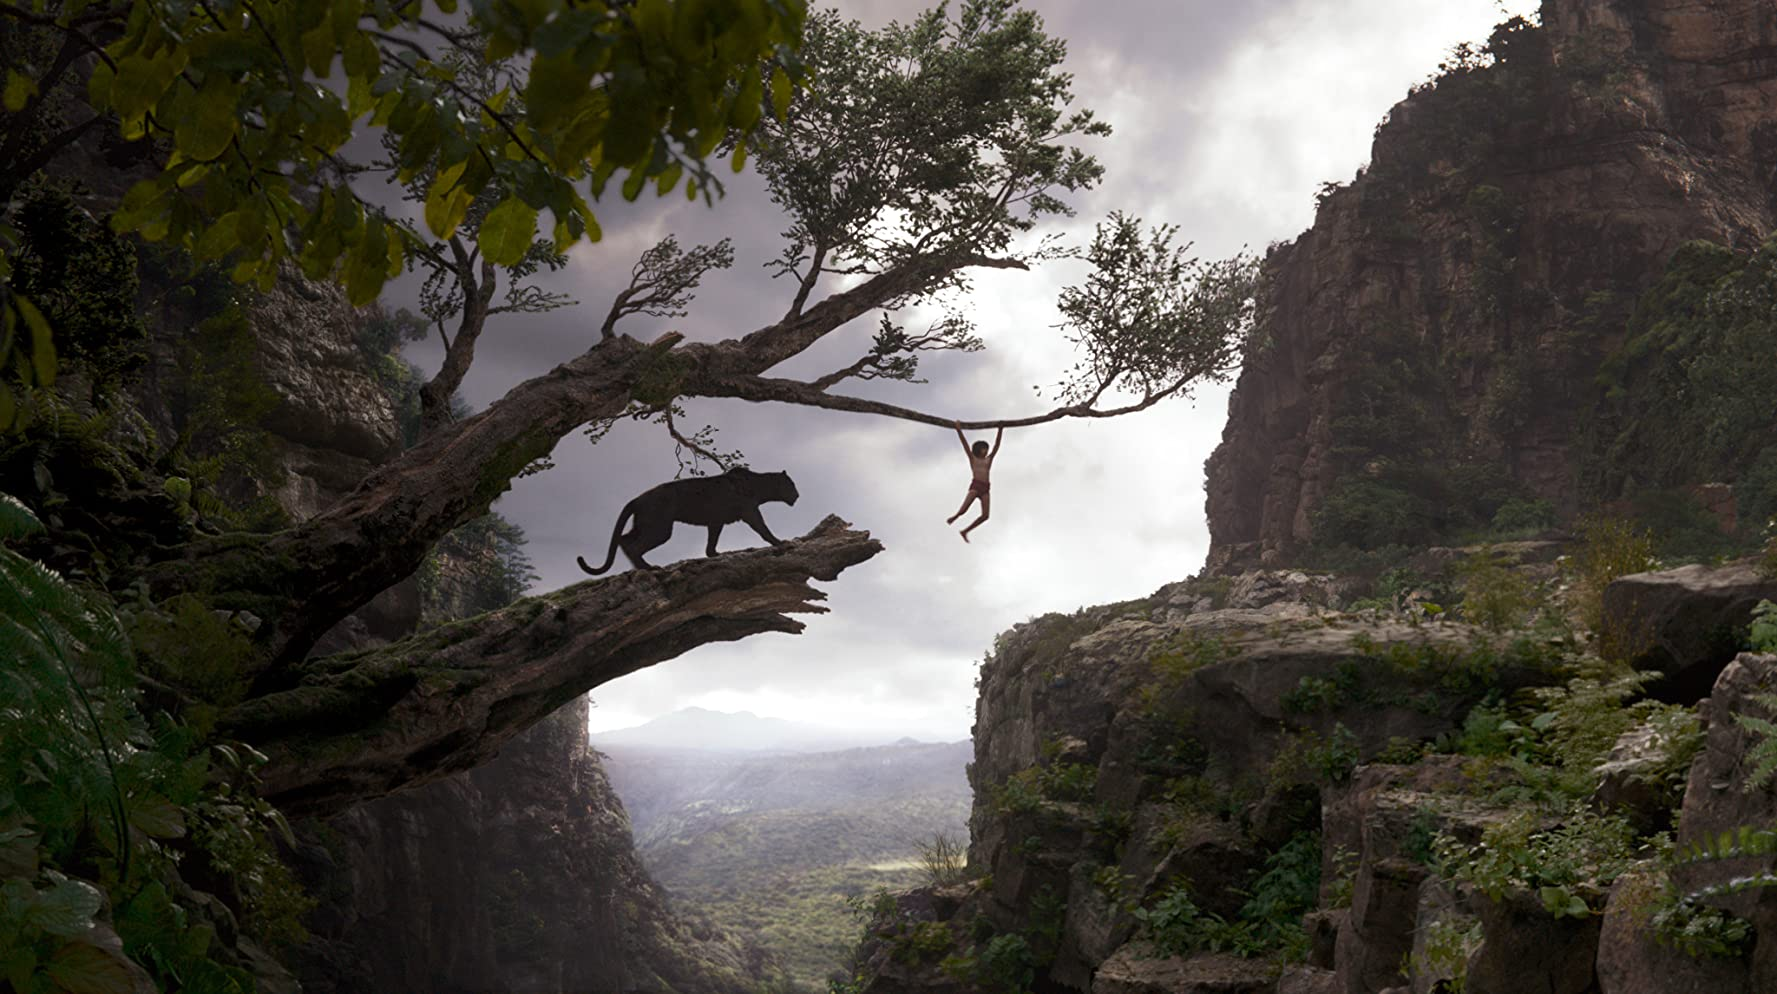 Ben Kingsley and Neel Sethi in The Jungle Book (2016)